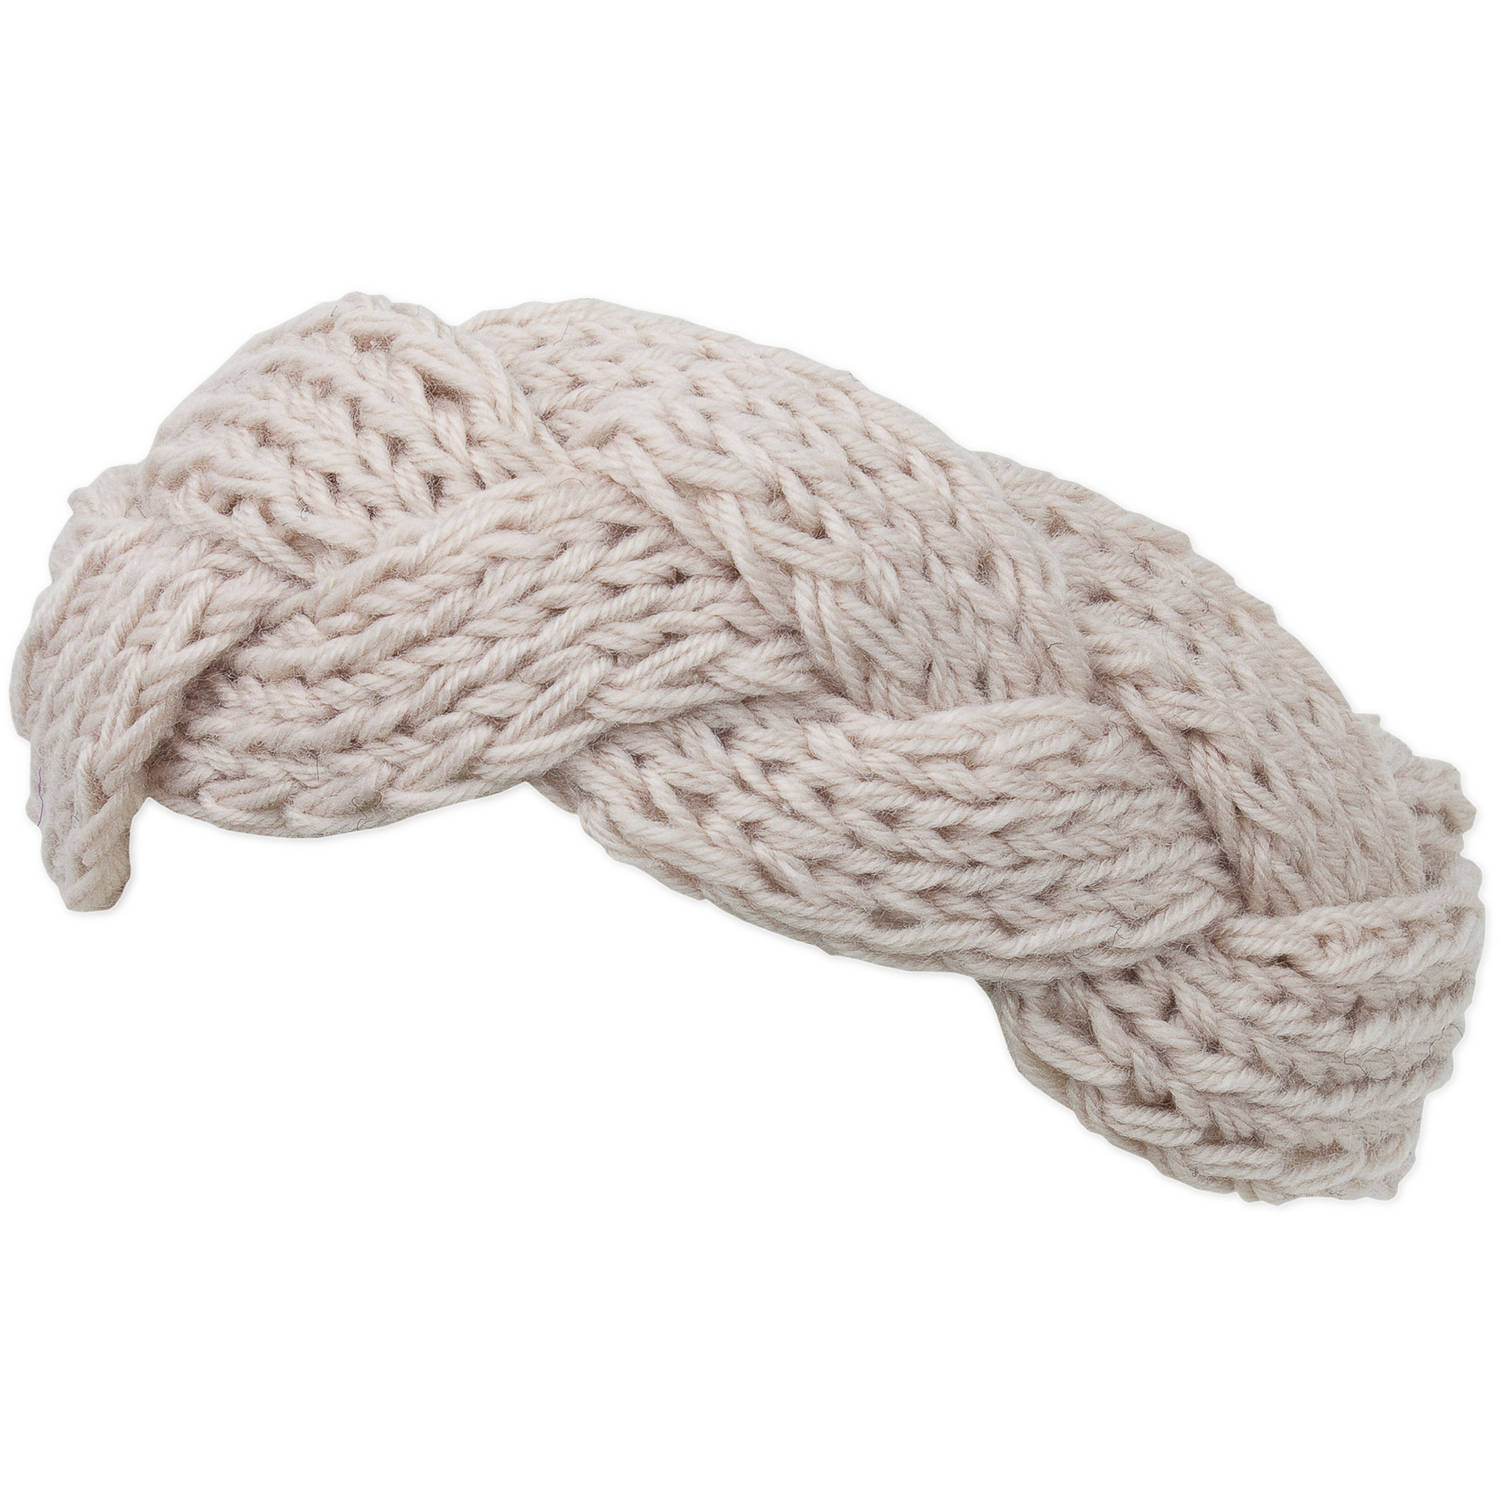 Magid Knit Chunky Braided Headwrap